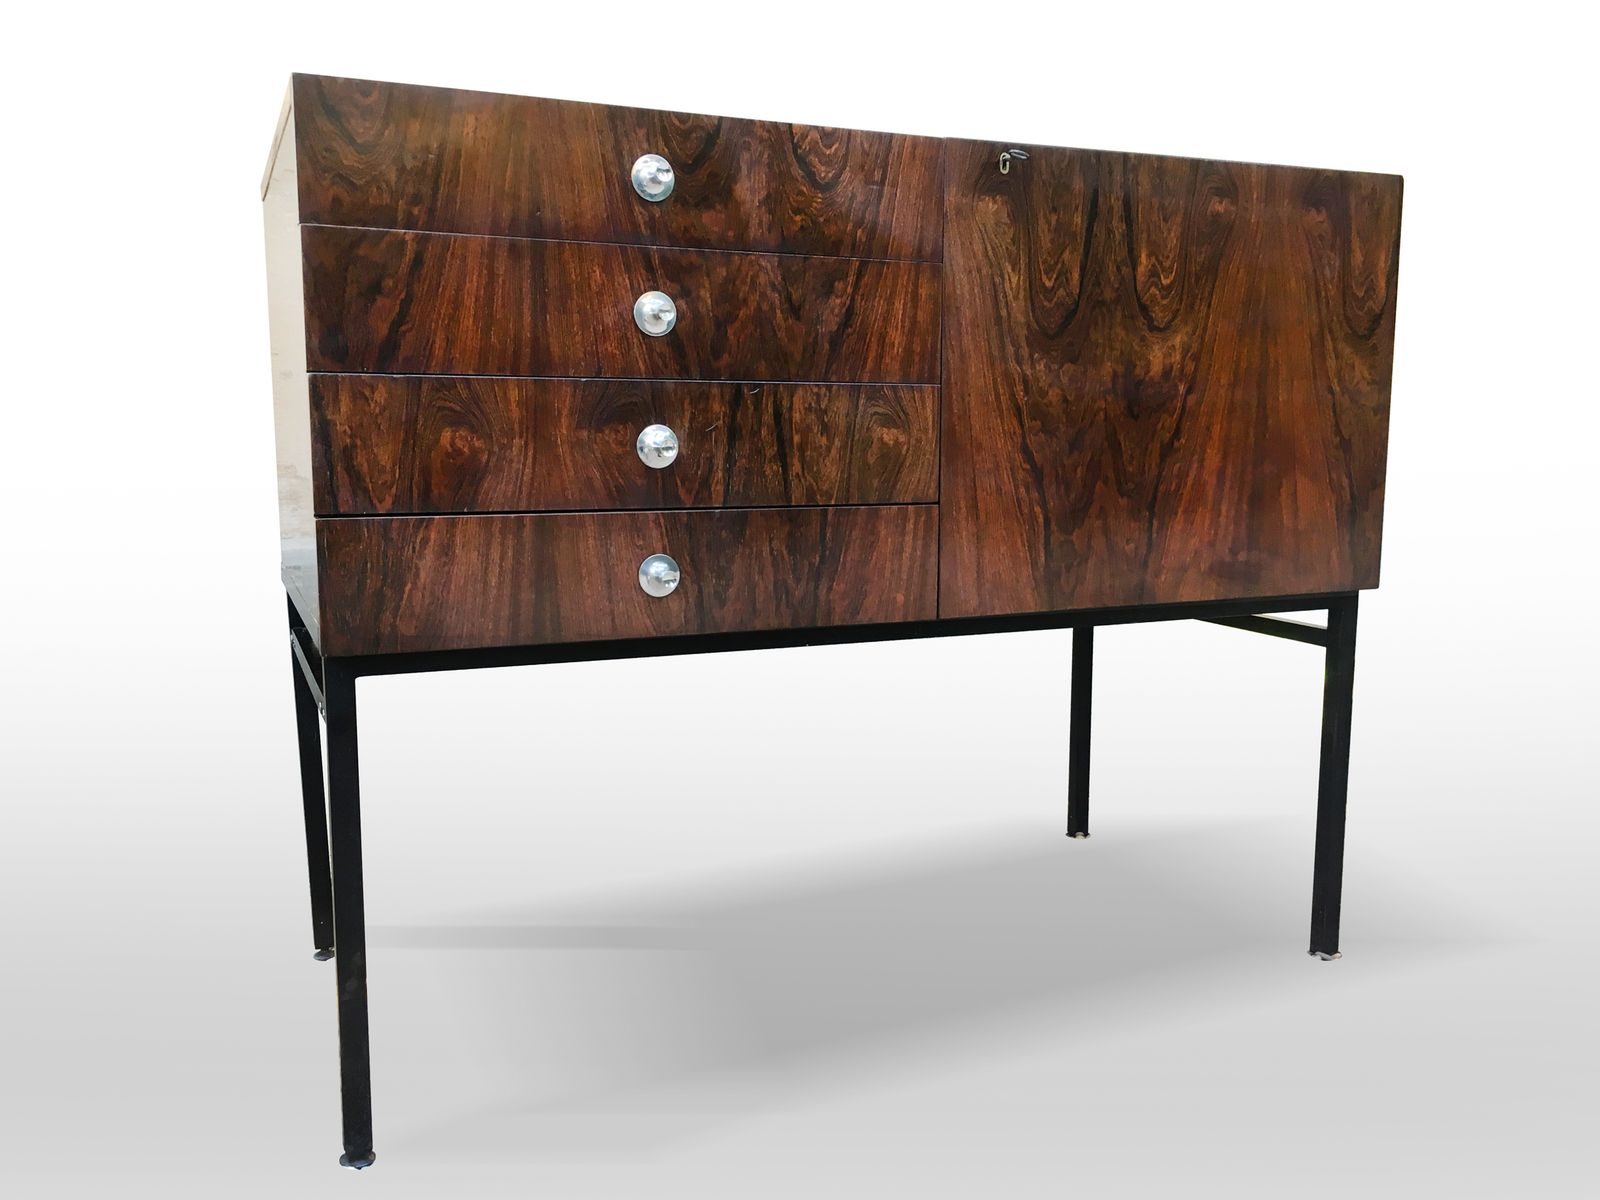 vintage sideboard 800 by alain richard for meubles tv for sale at pamono. Black Bedroom Furniture Sets. Home Design Ideas